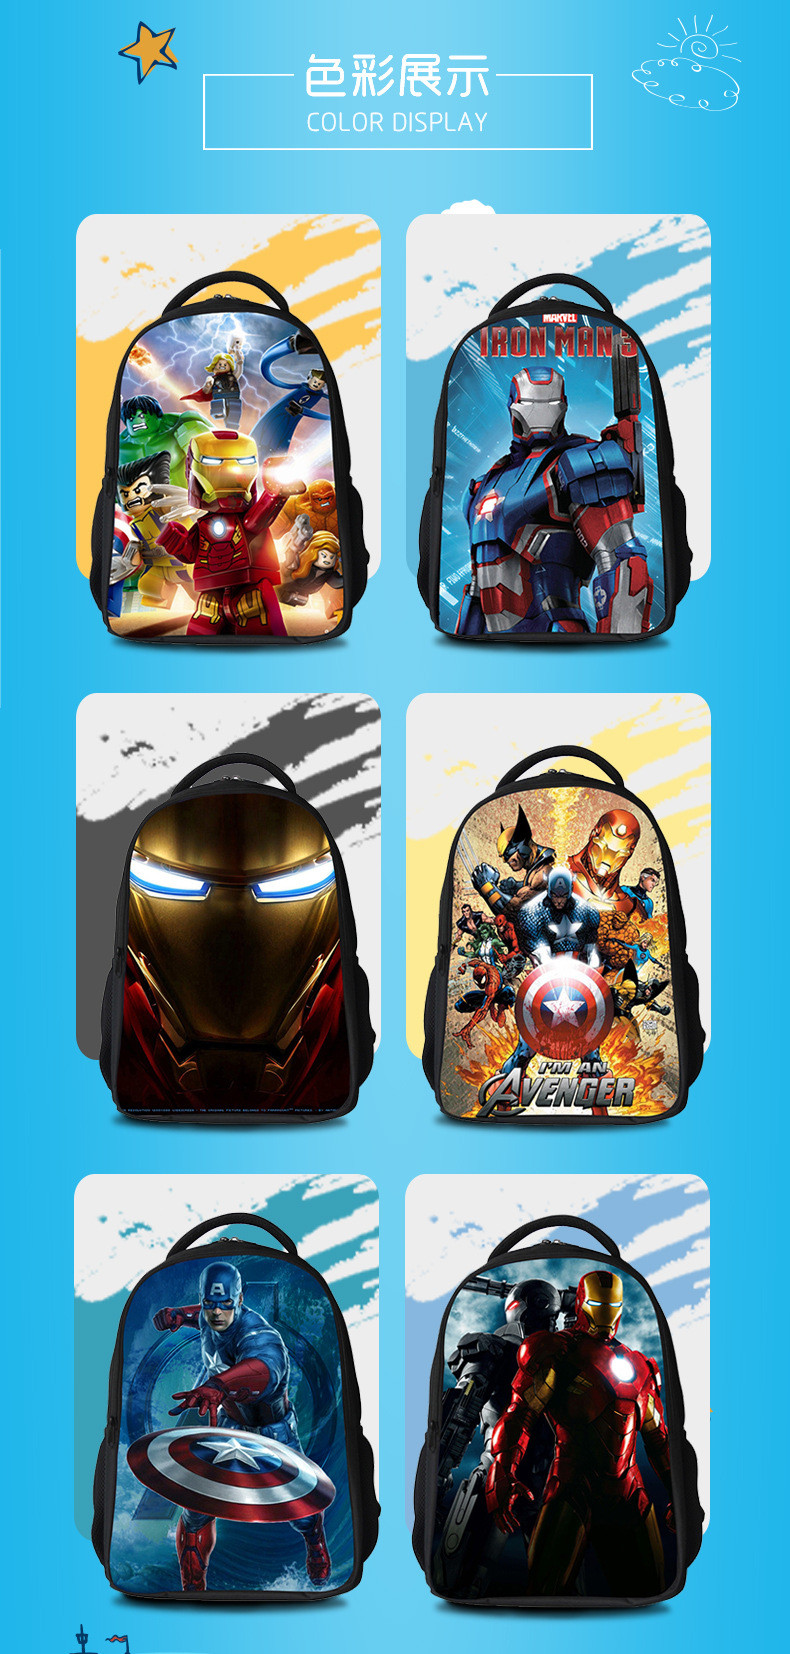 3D Marvel s The Avengers Cartoon Captain America Children Backpacks Boys  Schoolbag Iron Man bags Printing School BackpackUSD 16.95 piece 52bc1c37427c2